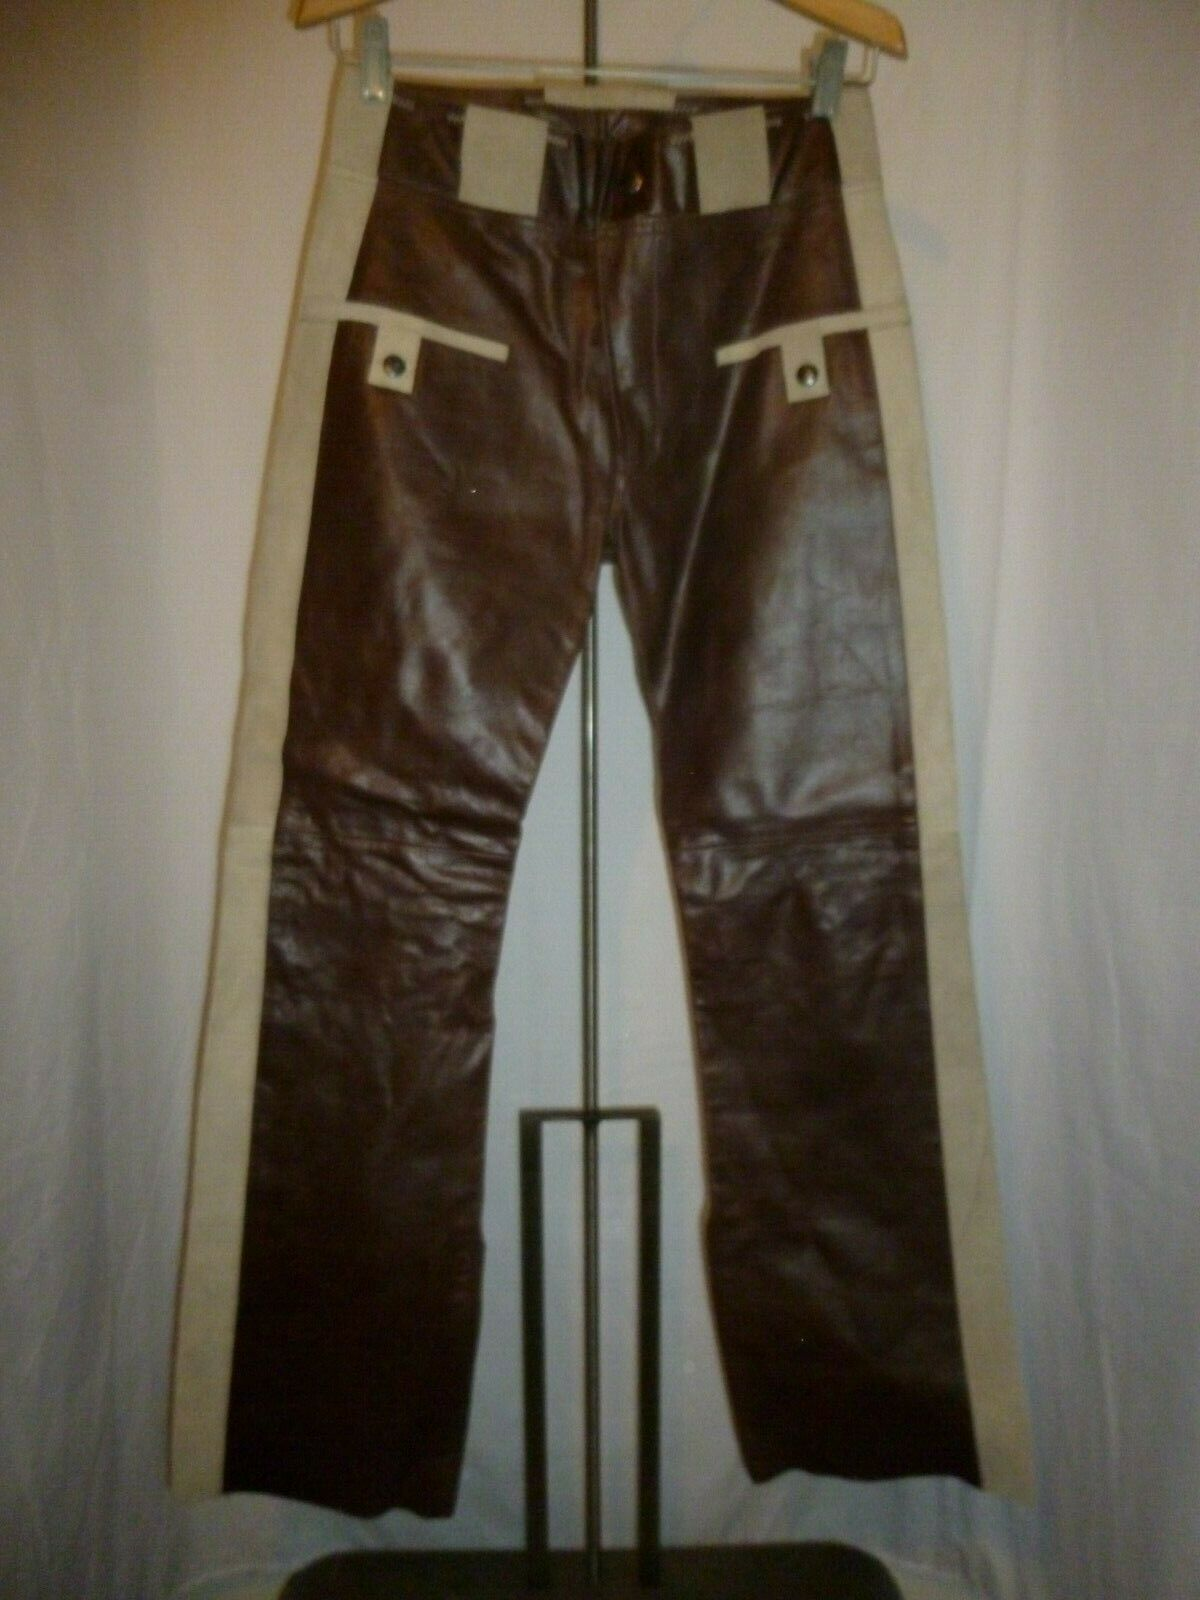 NWT Vintage Diesel Leather  Muskrate  Pants Biker SZ 26 x 30